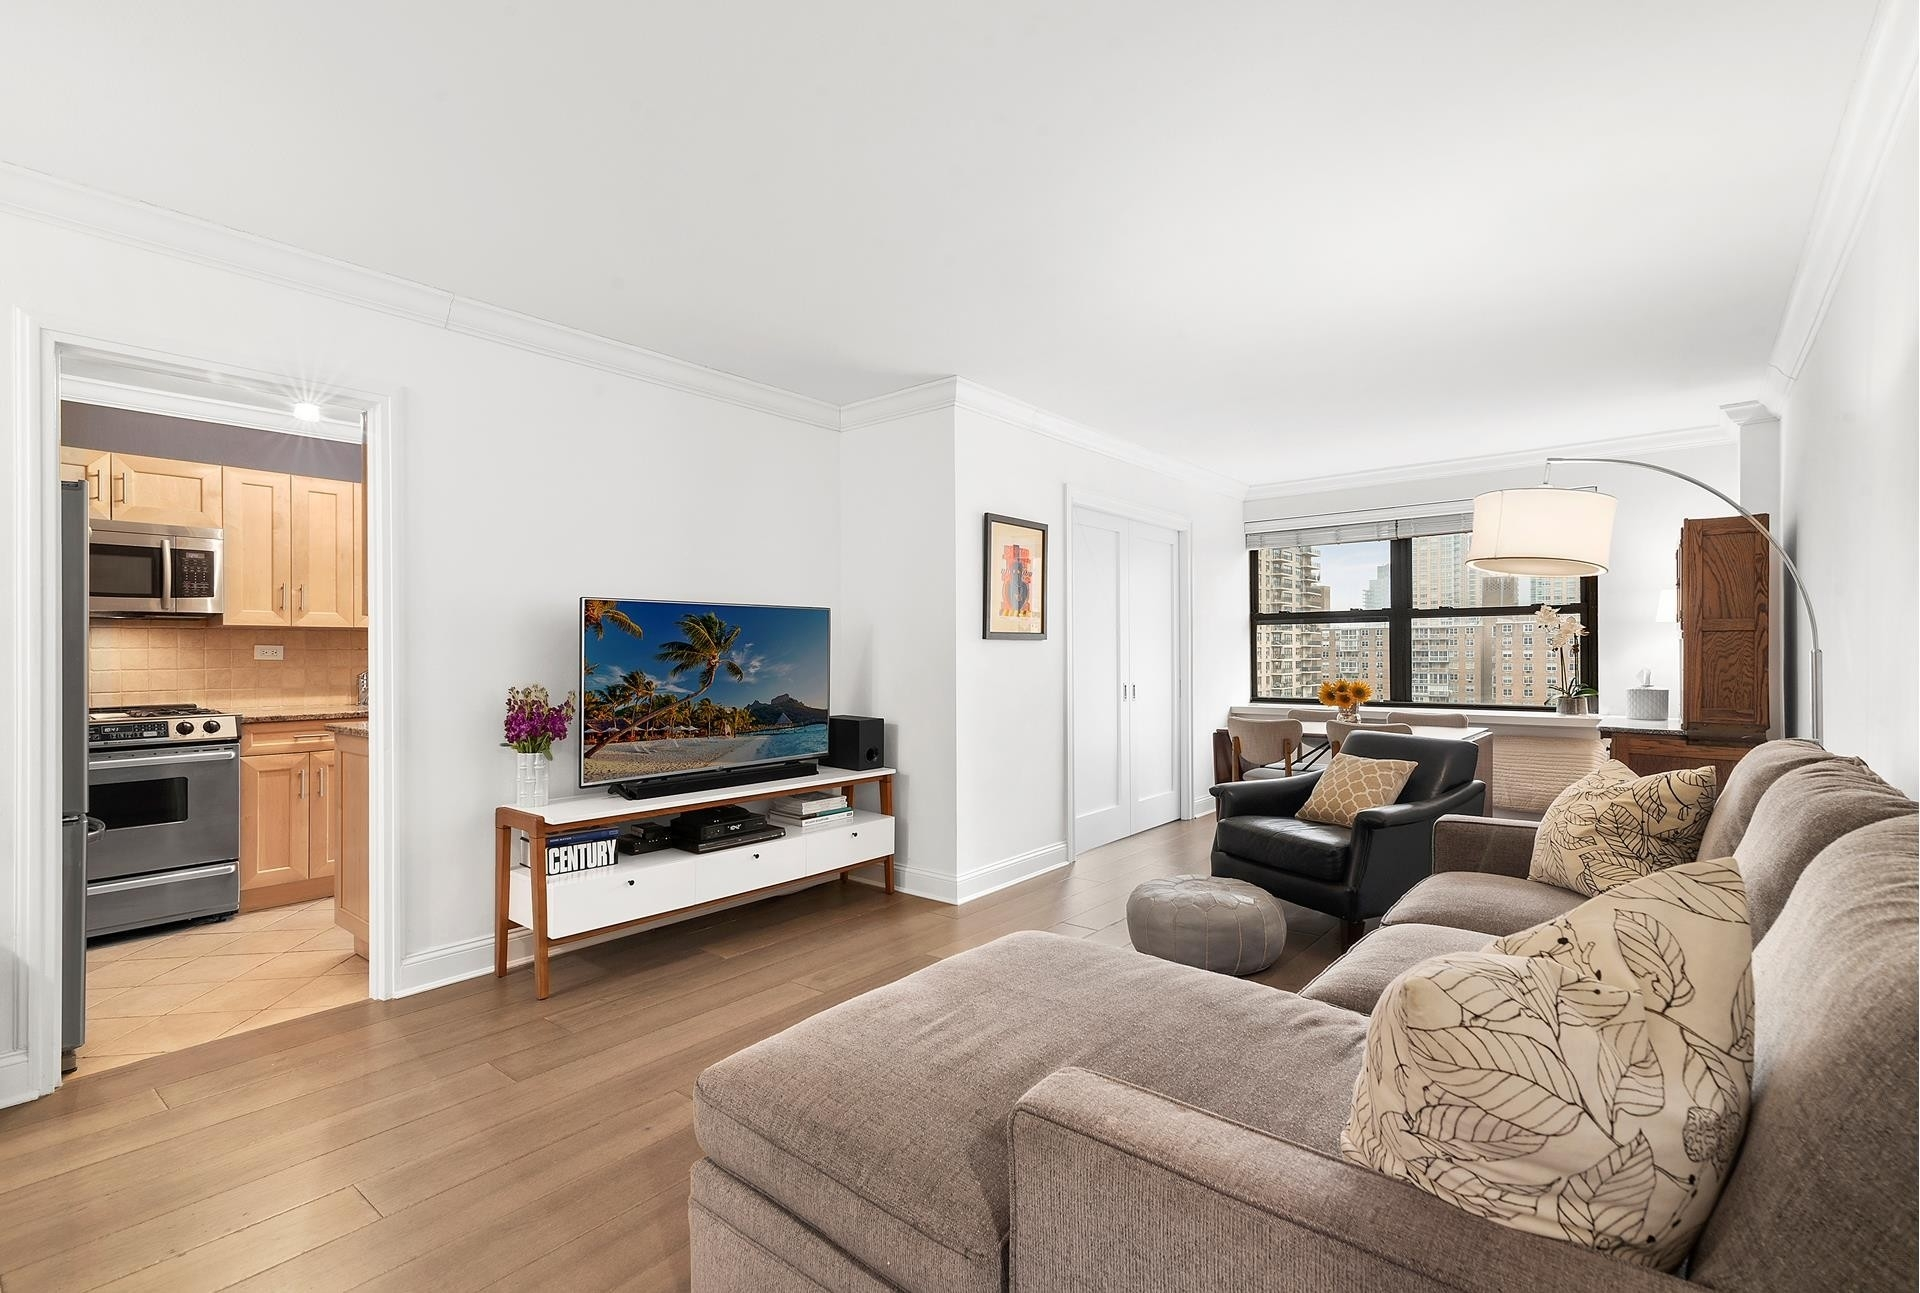 Co-op Properties for Sale at Lincoln Towers, 205 W END AVE , 17B Lincoln Square, New York, NY 10023